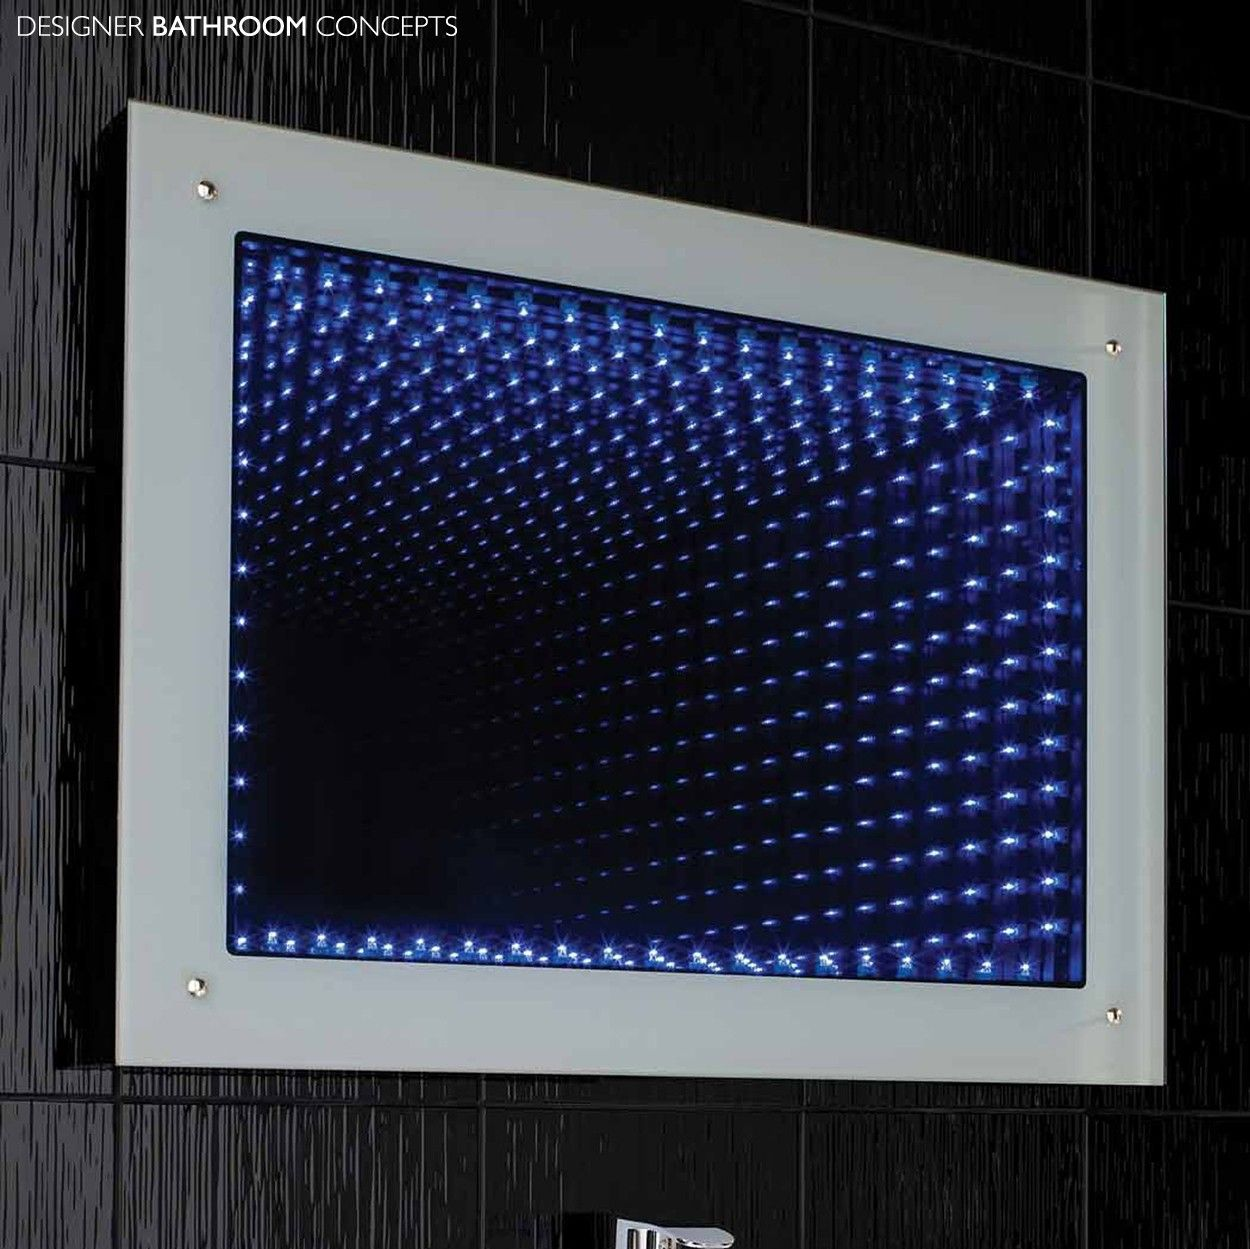 Bathroom Mirrors Led lucio infinity led bathroom mirror - main image | berlin